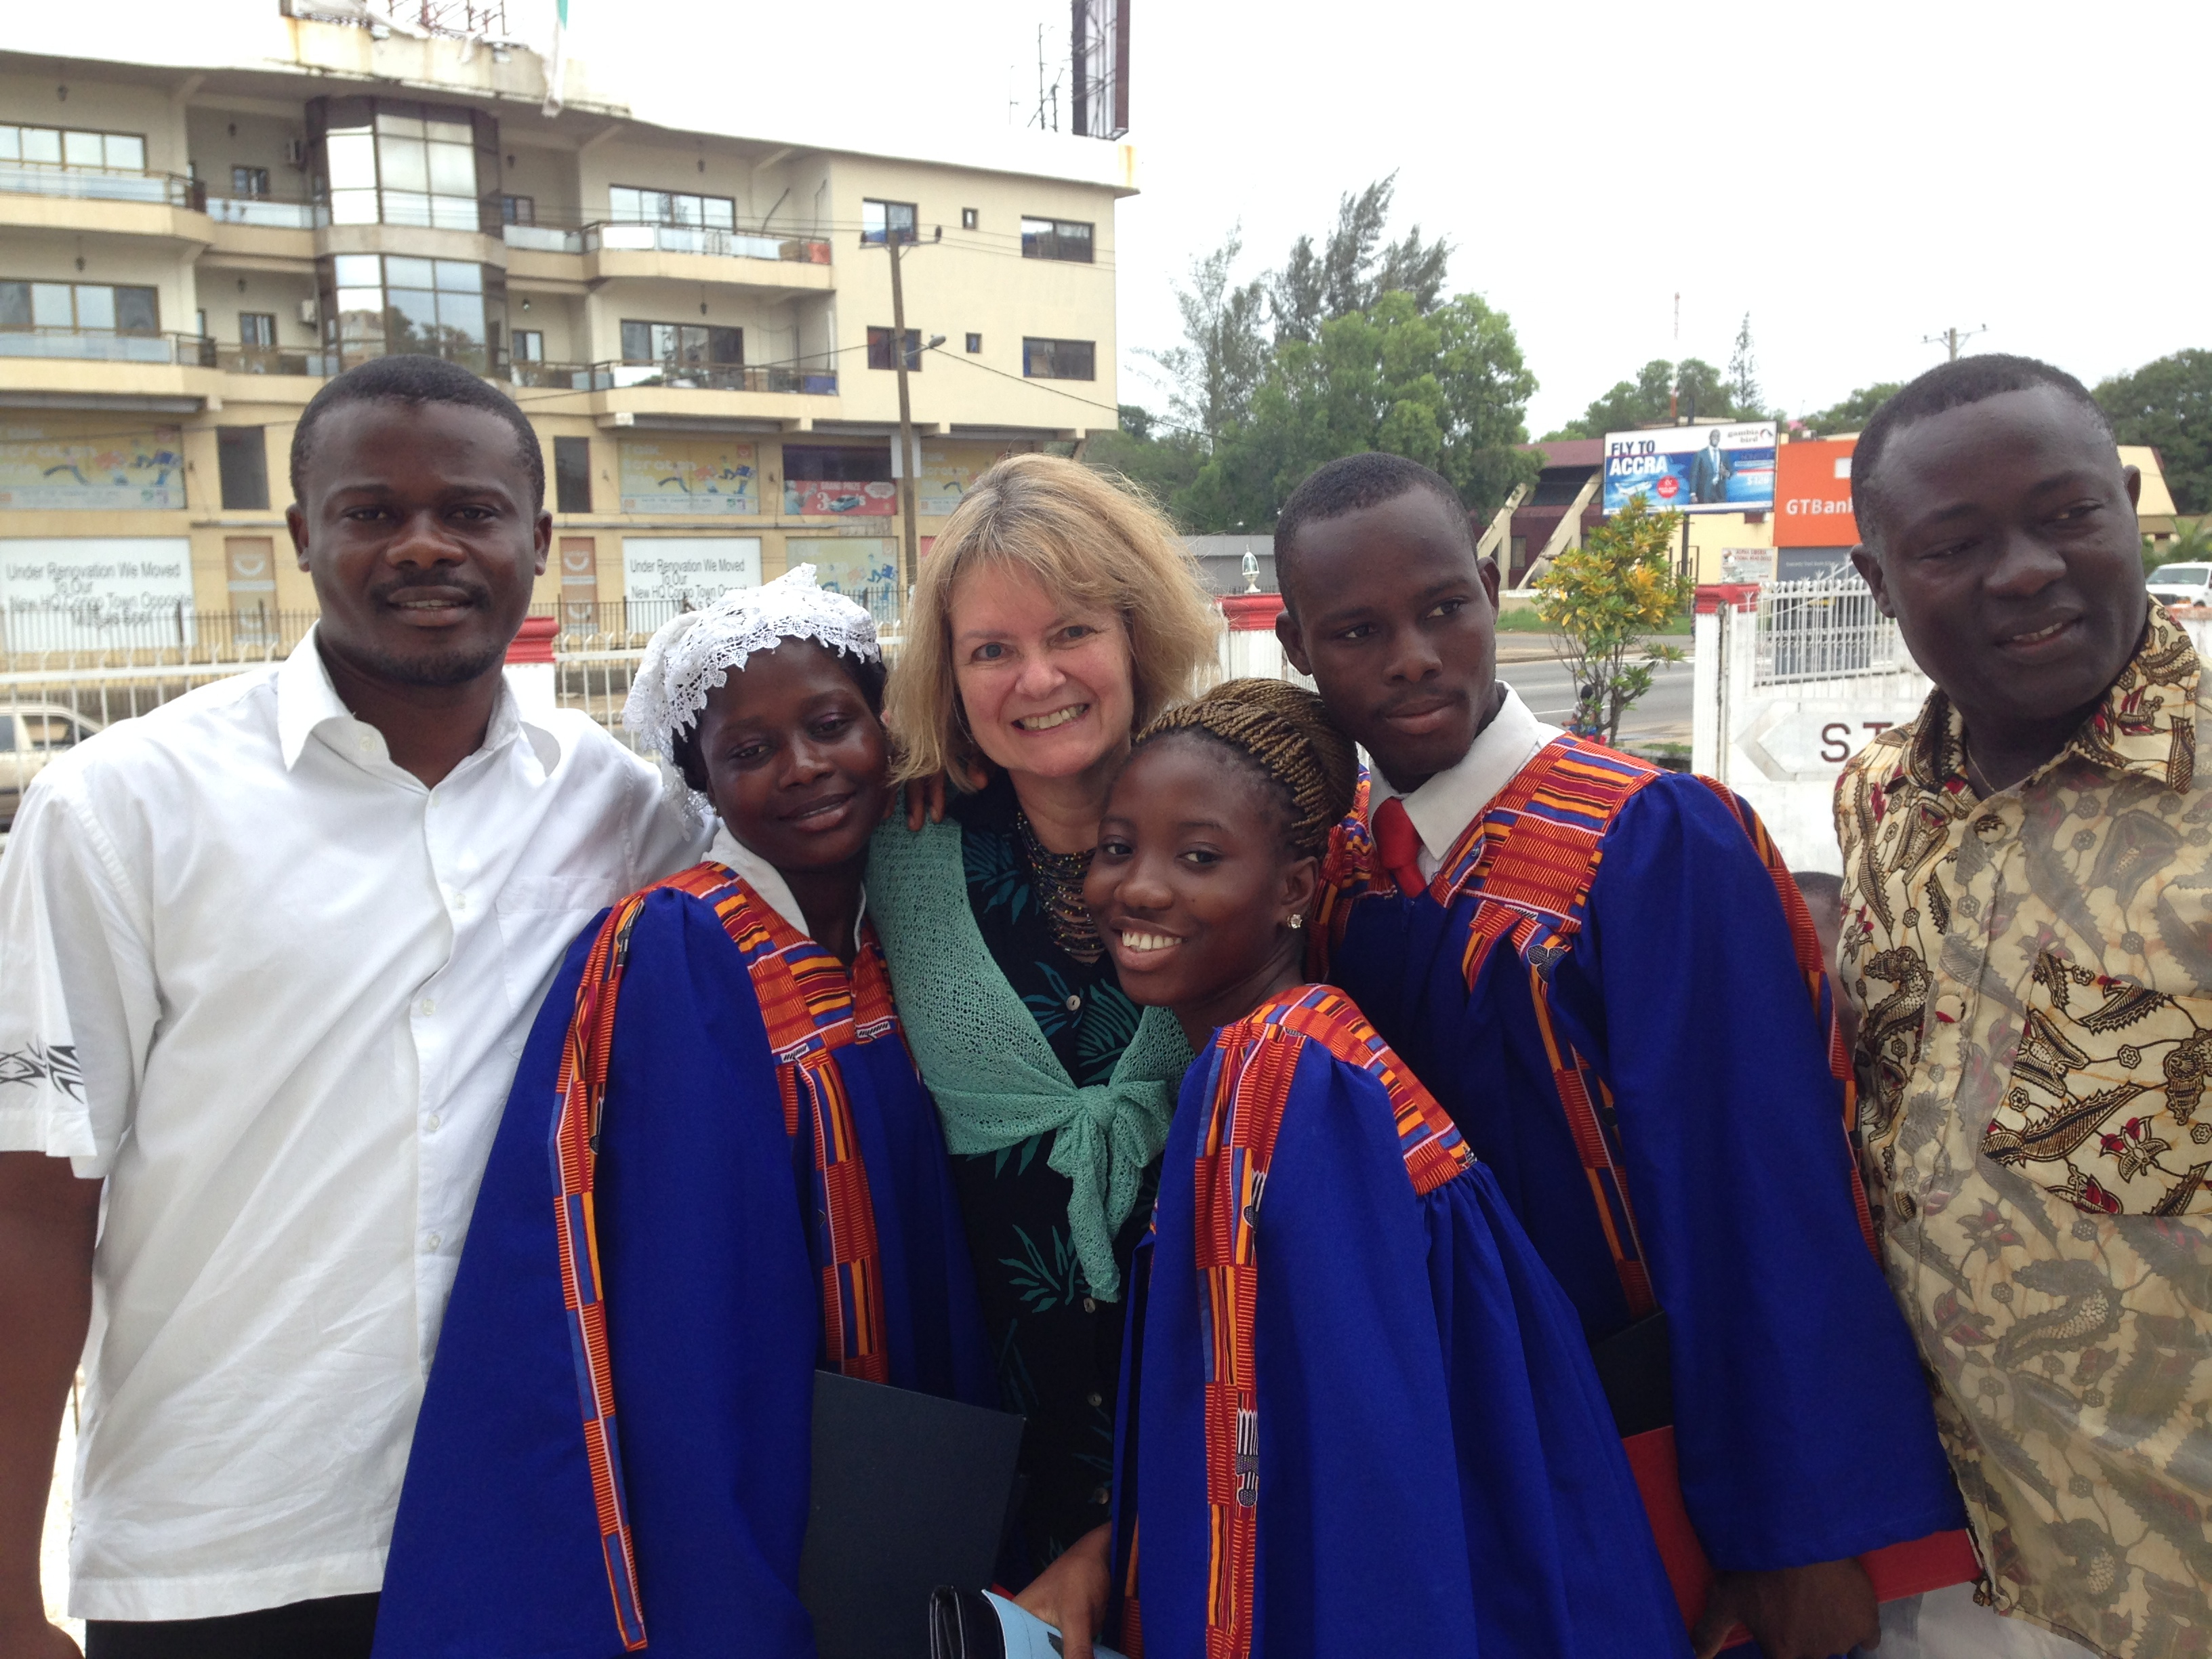 Sam, Julie, some of the choir, and the choir director, Sawie Davies.